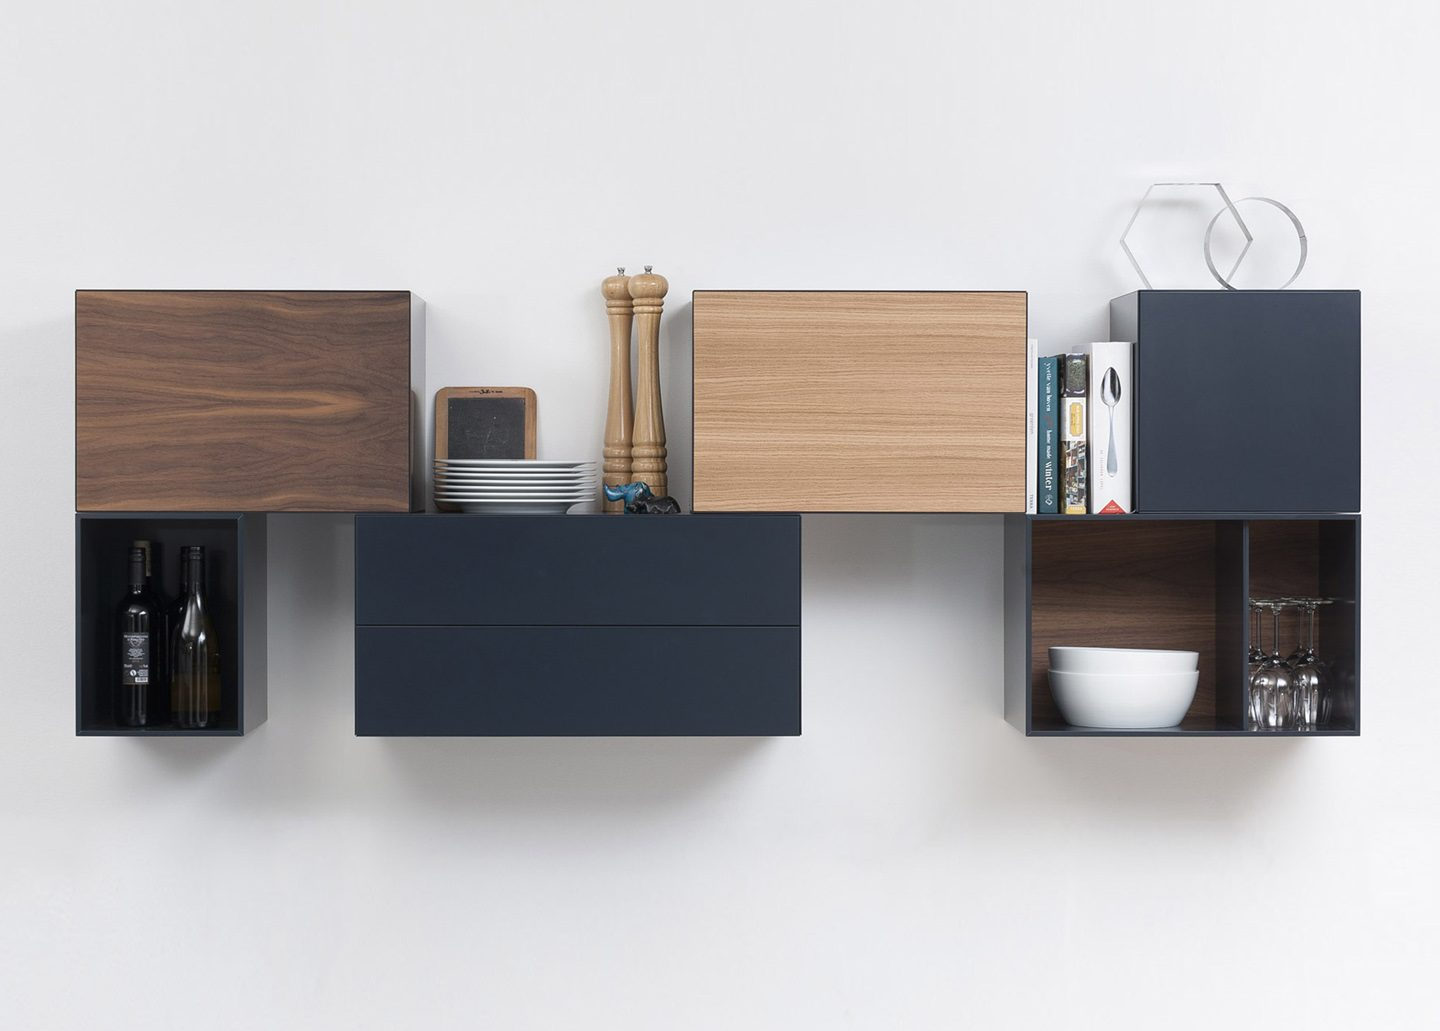 JOOST SELECTION VISION BOXES BY PASTOE